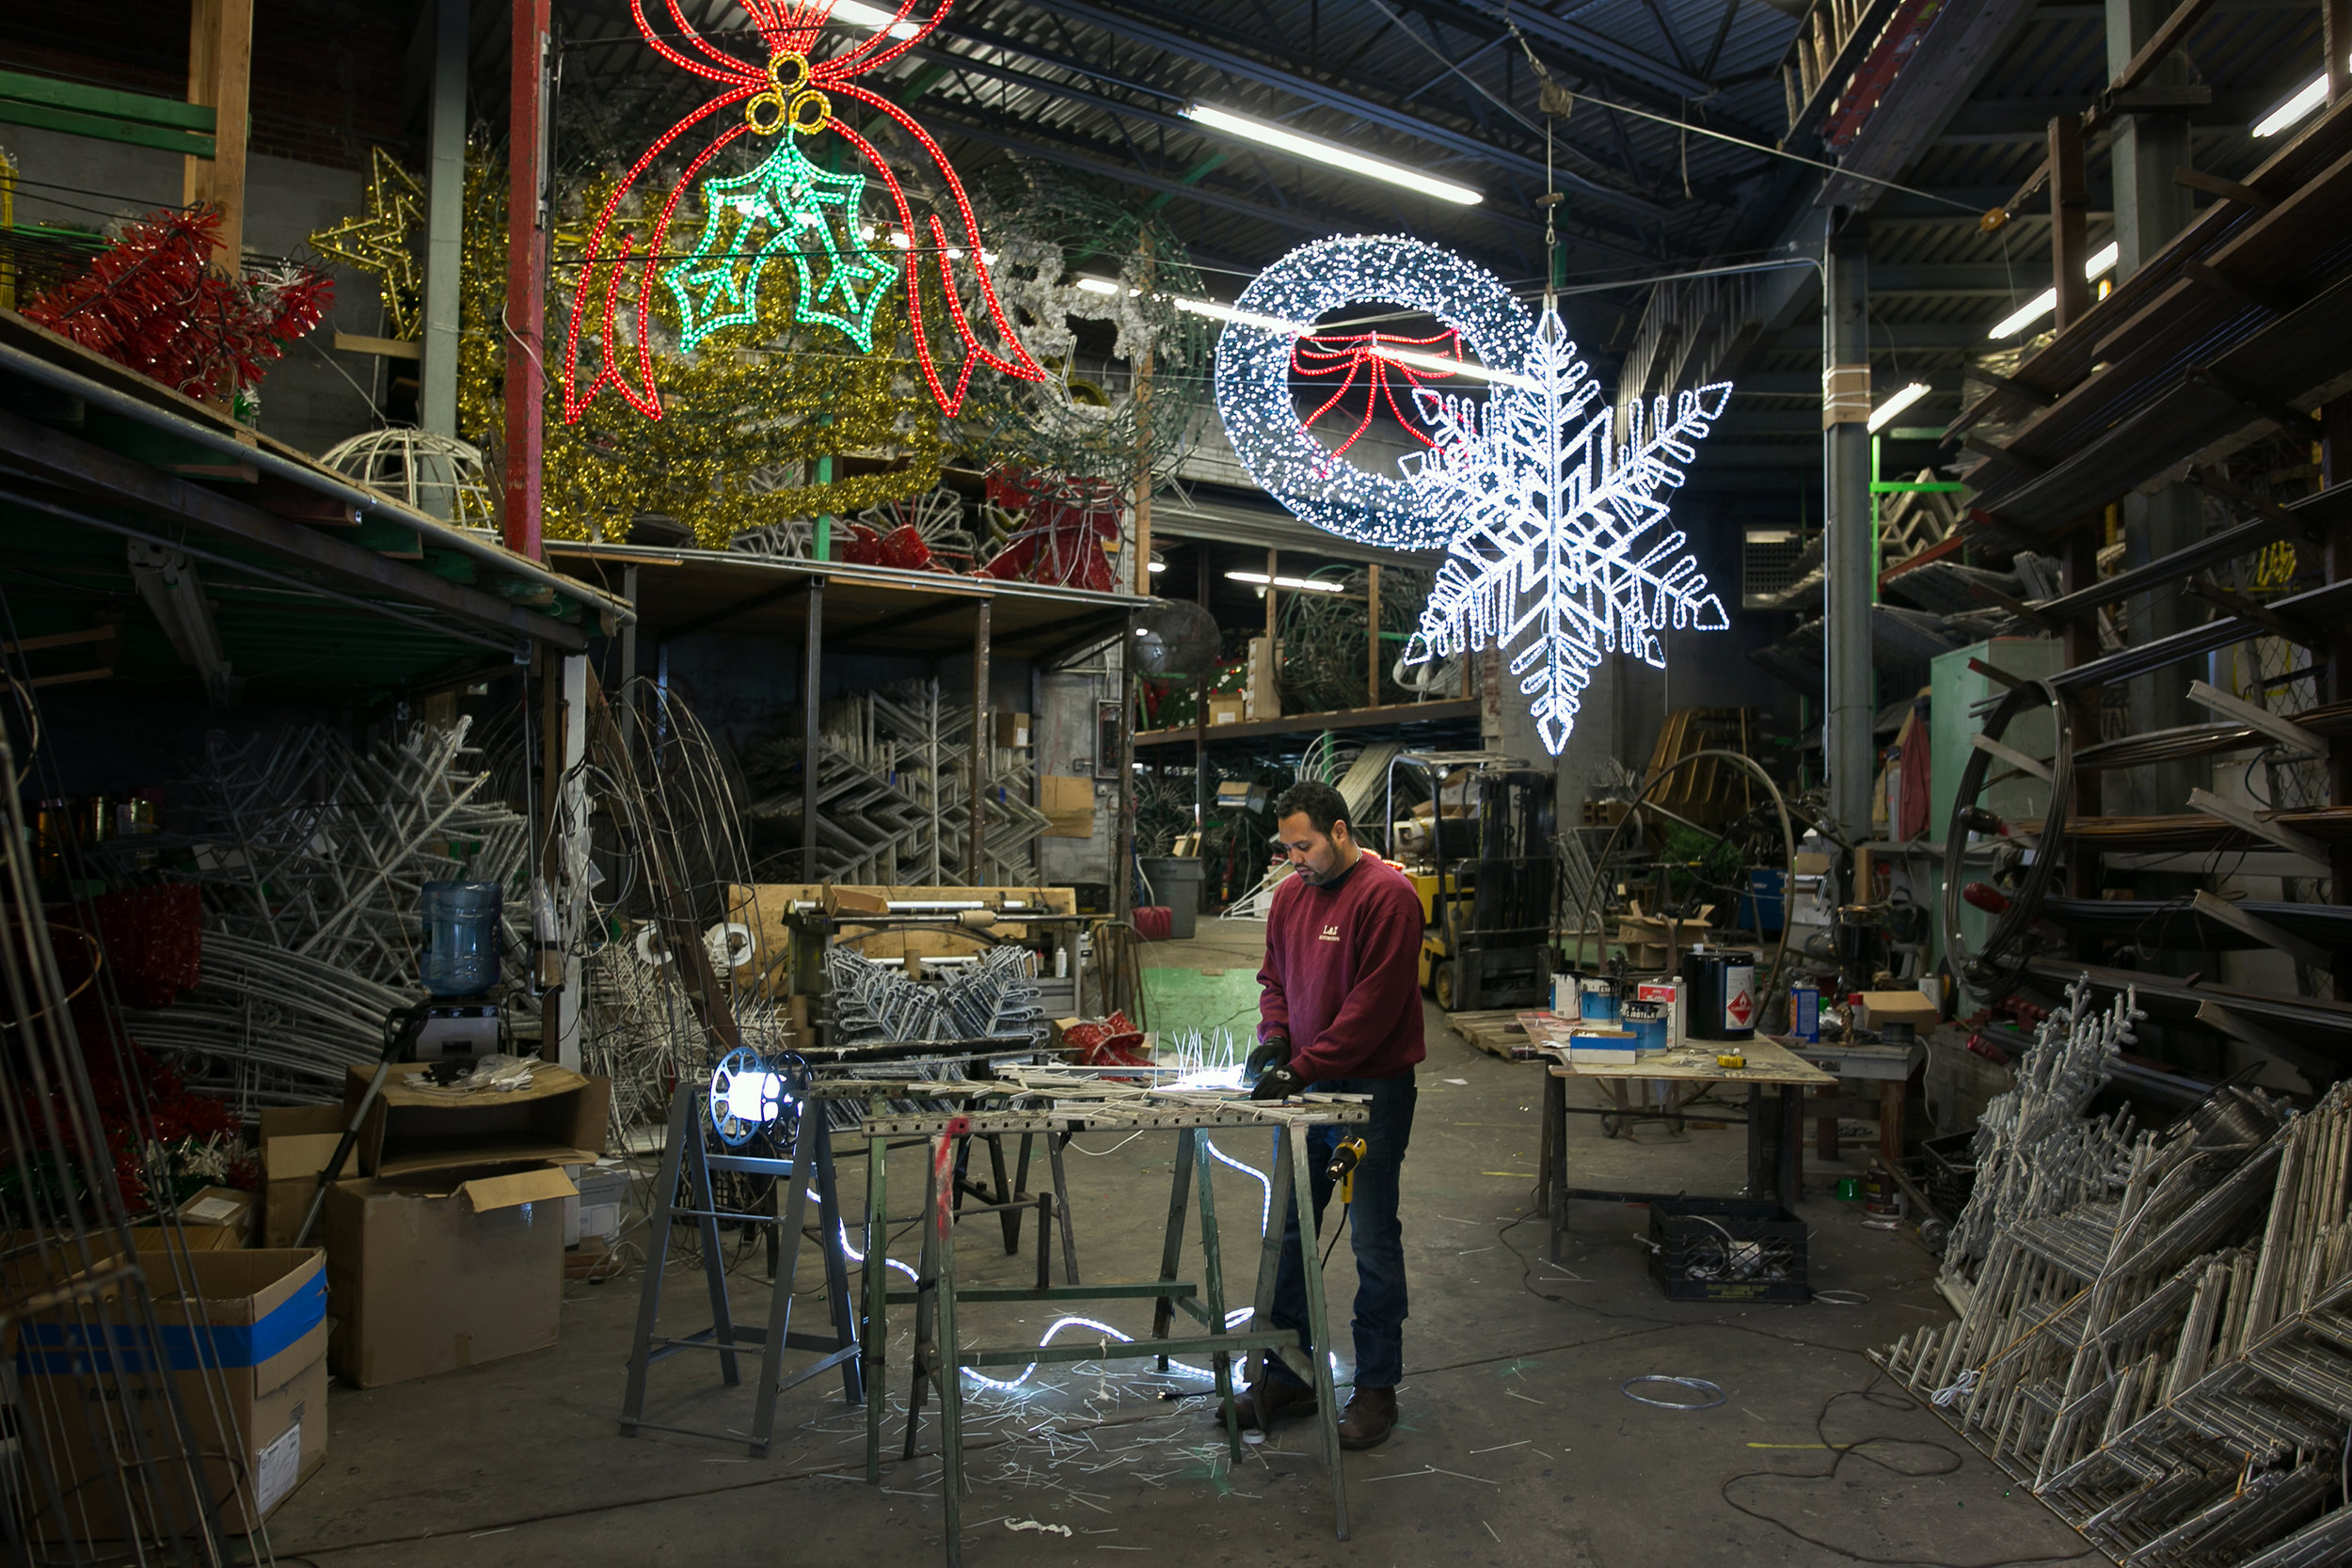 Juan Midence assembling string lights around a holiday decoration at Illuminations by Arnold, a family-run business in Brooklyn.